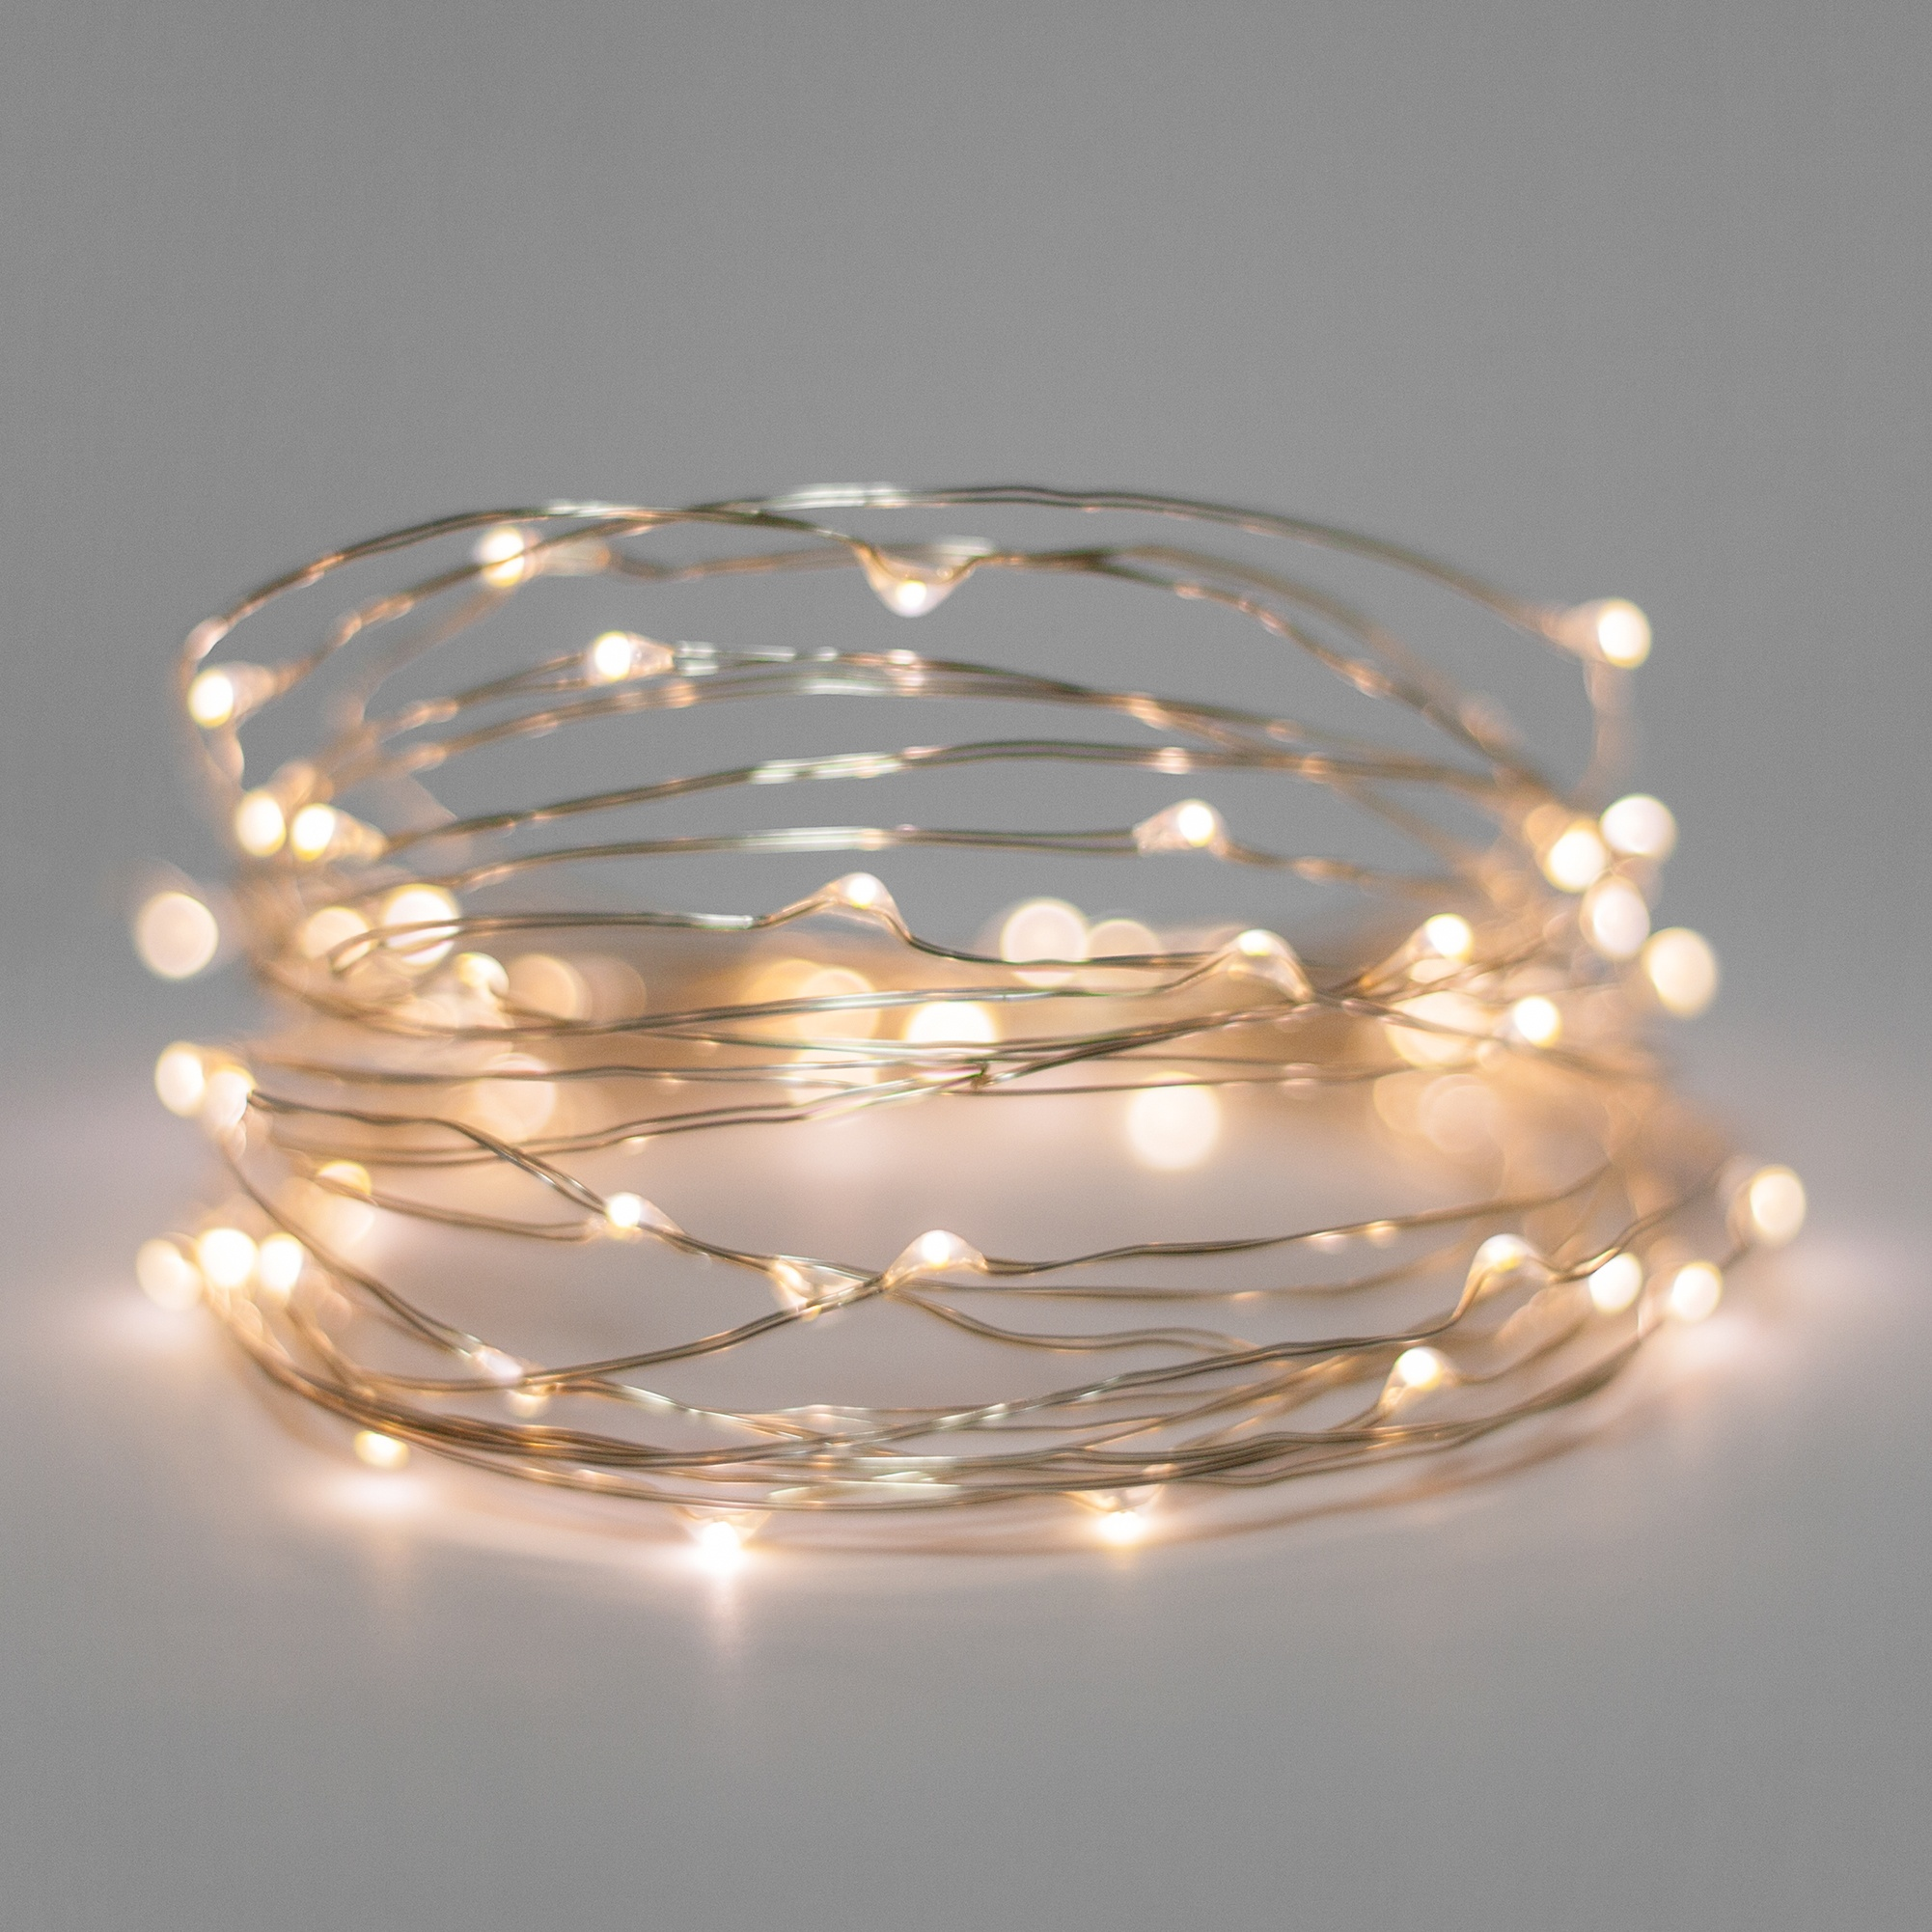 Bon Battery Operated Lights   30 Warm White Battery Operated LED Fairy Lights,  Silver Wire